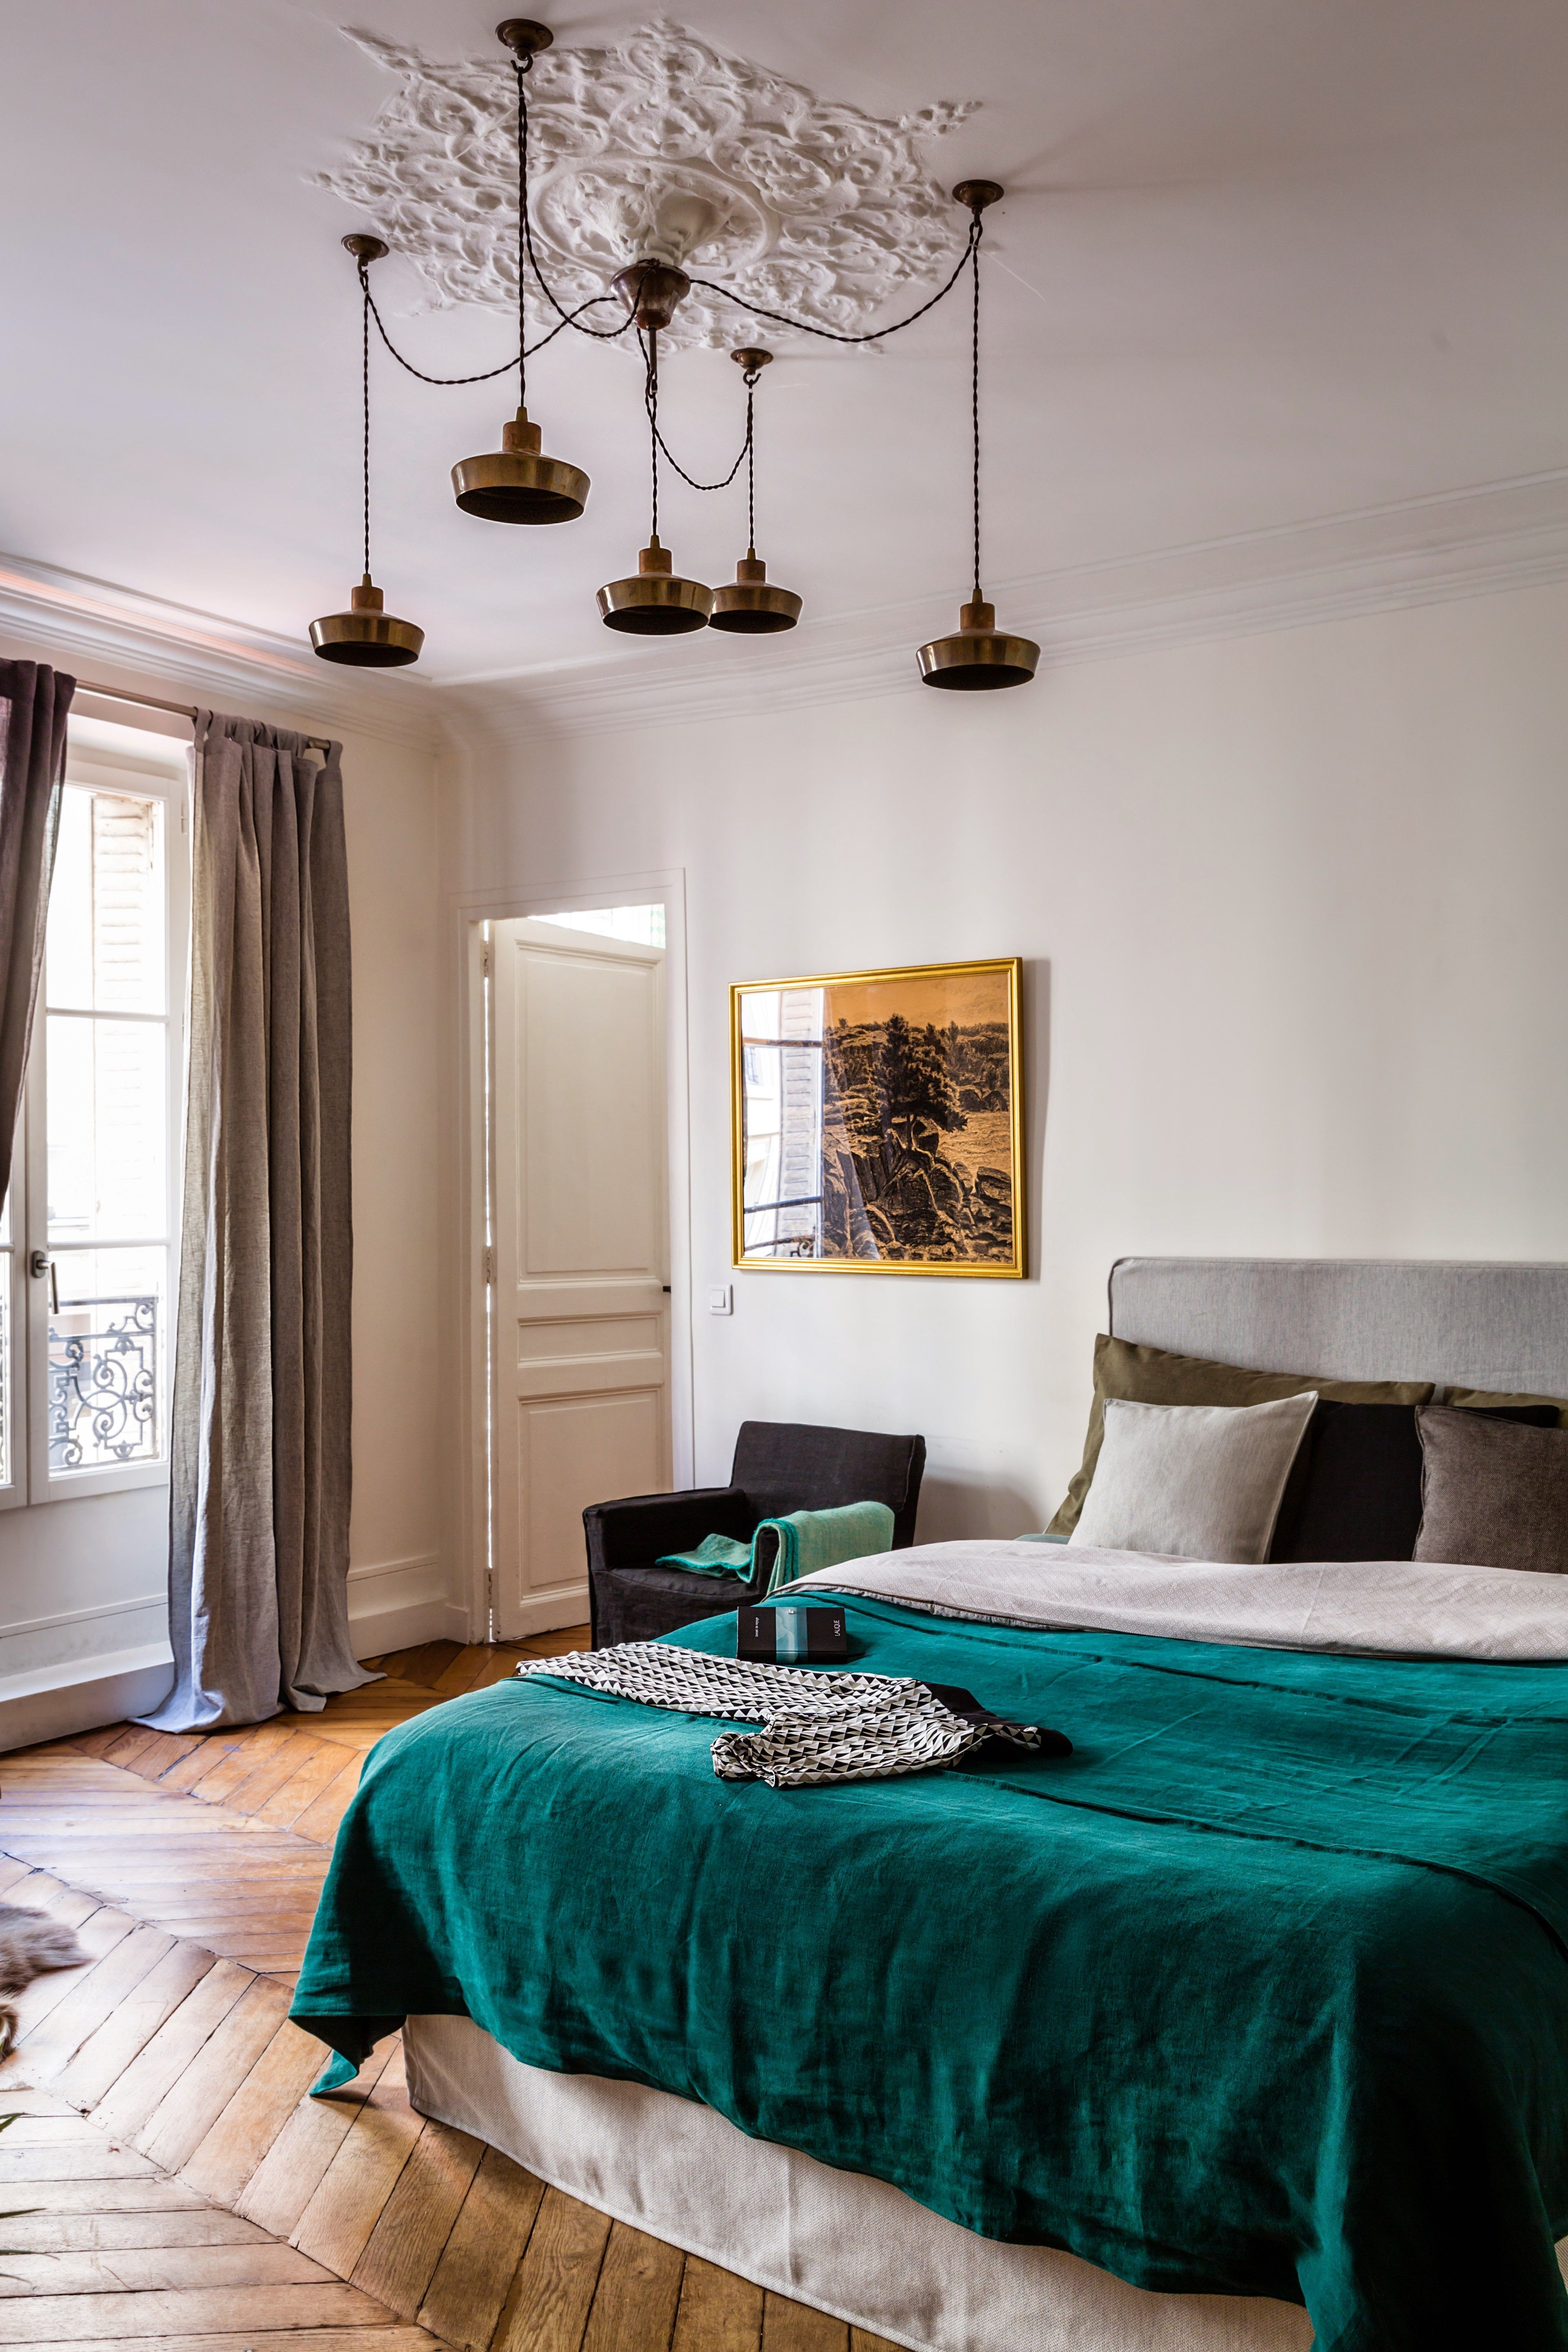 Elegant Parisian style bedroom with glamorous ceiling medallion